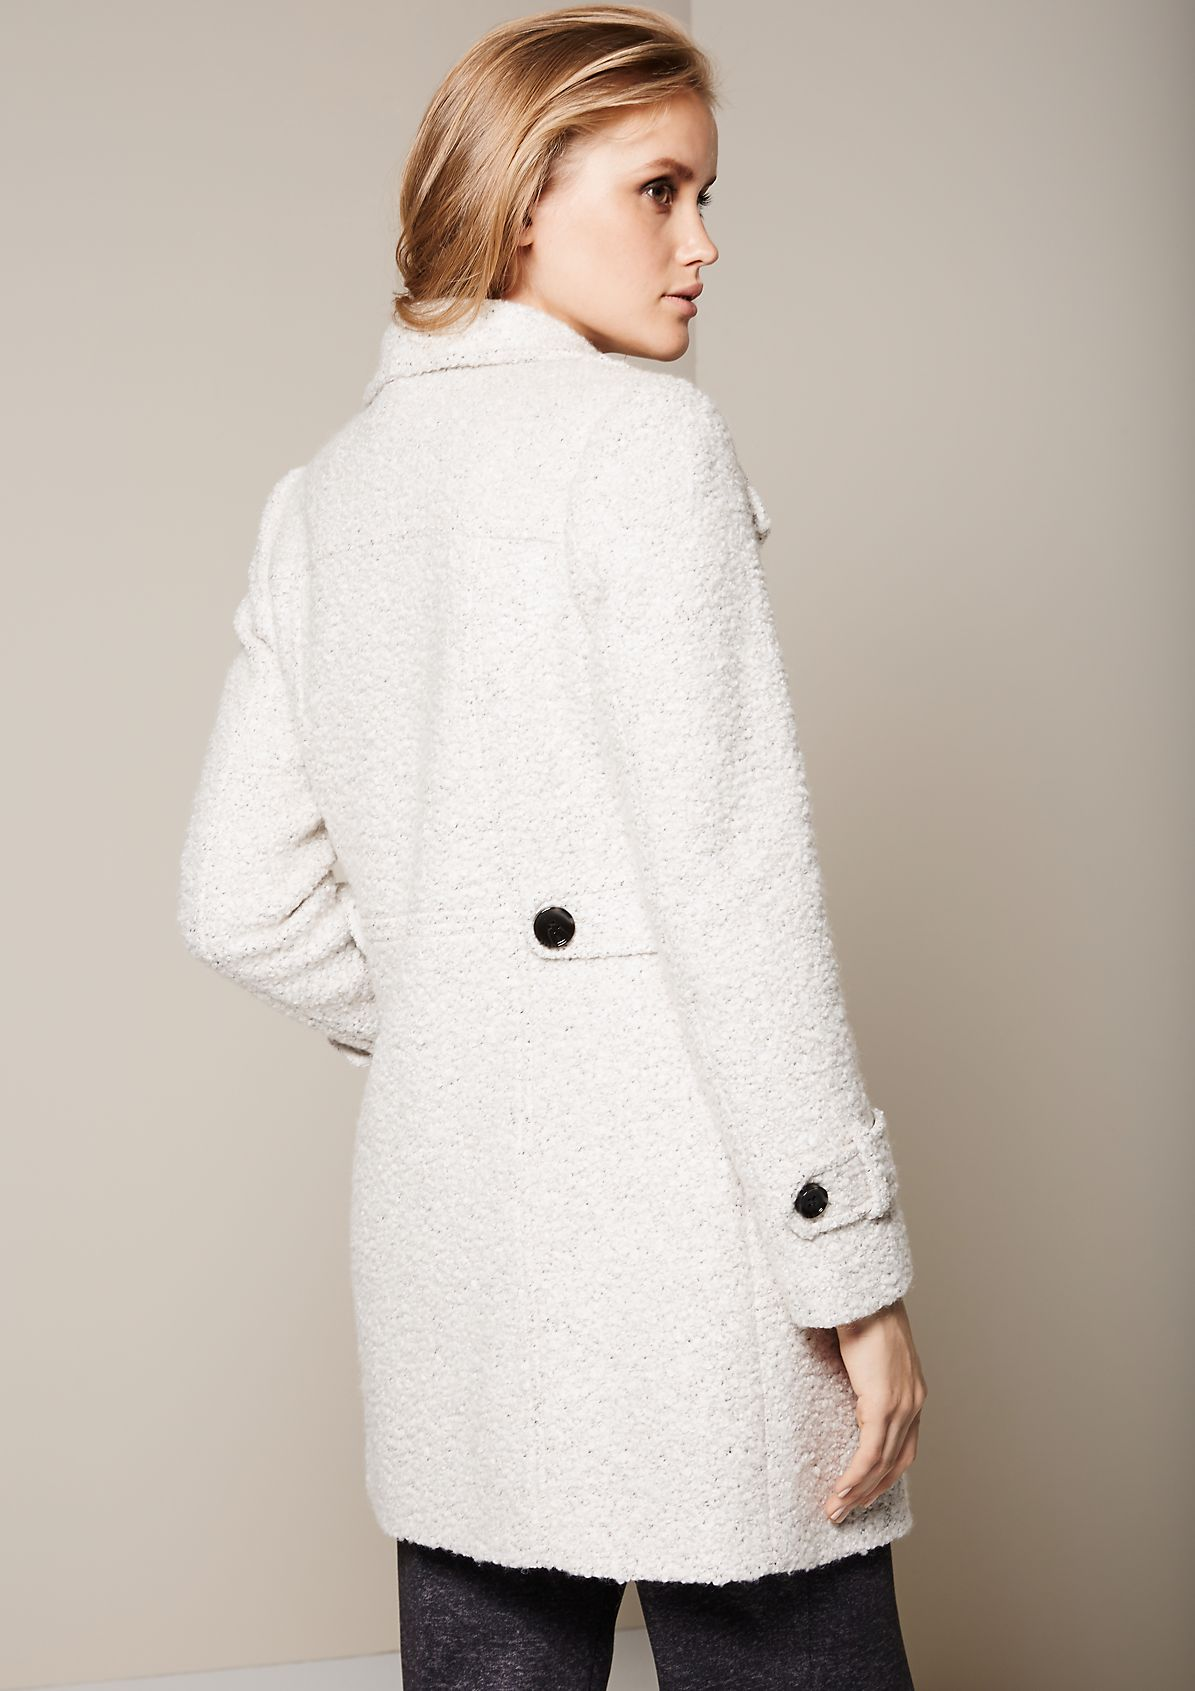 Elegant bouclé coat with smart details from s.Oliver